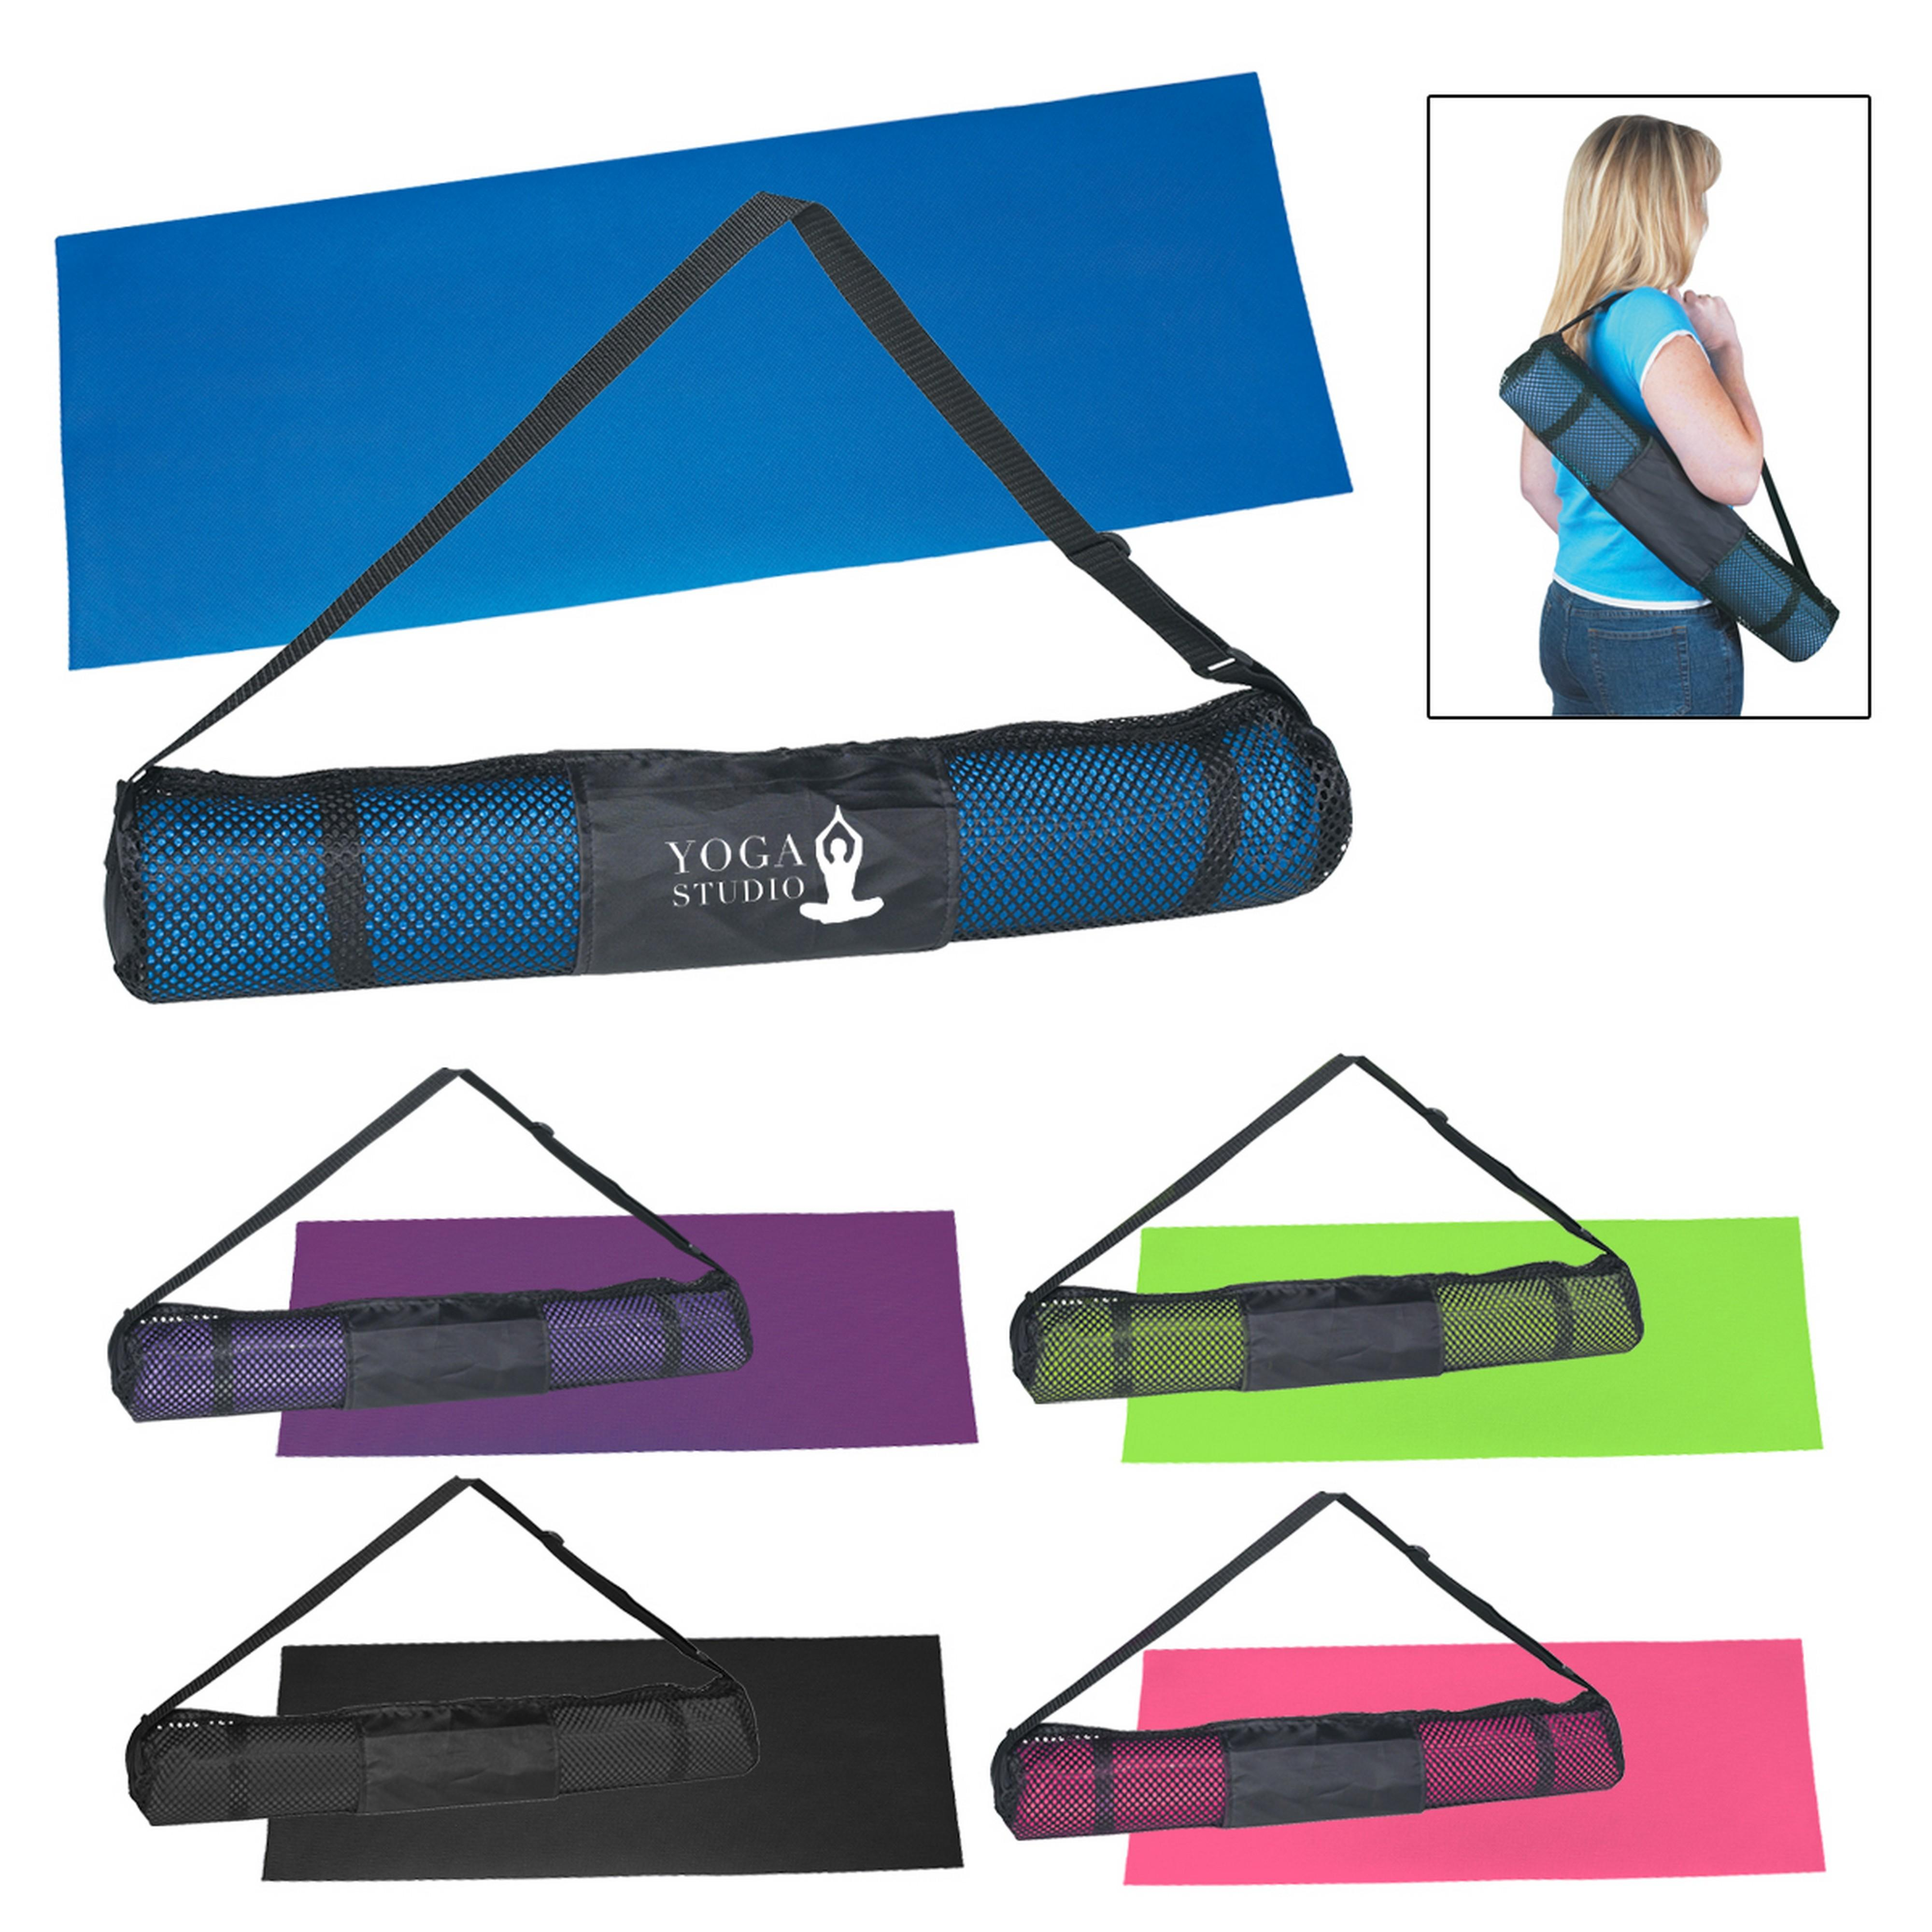 17361f6d65 Yoga Mat And Carrying Case - Screen Printed